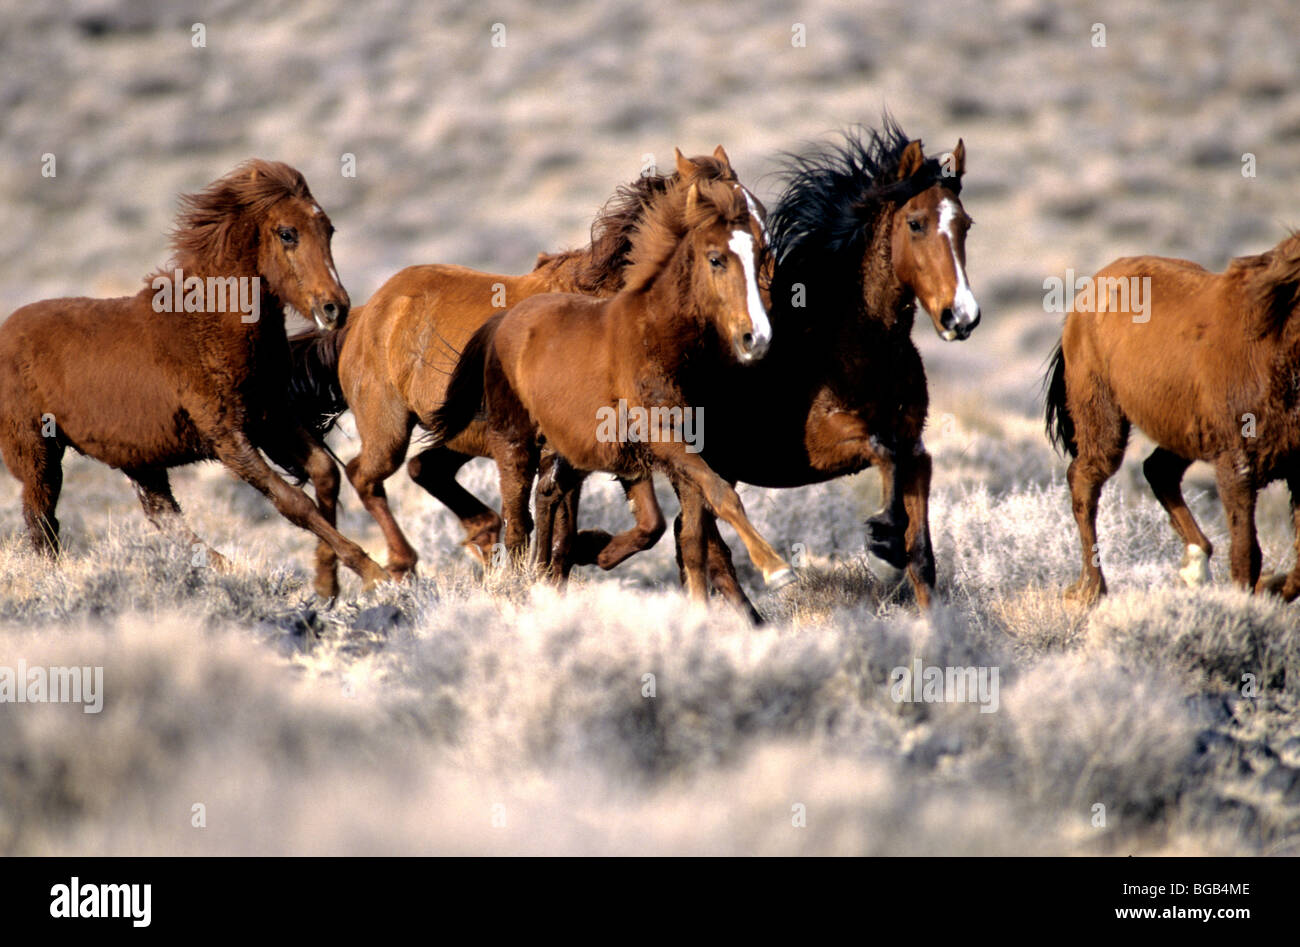 Wild Horses Running Free High Resolution Stock Photography And Images Alamy